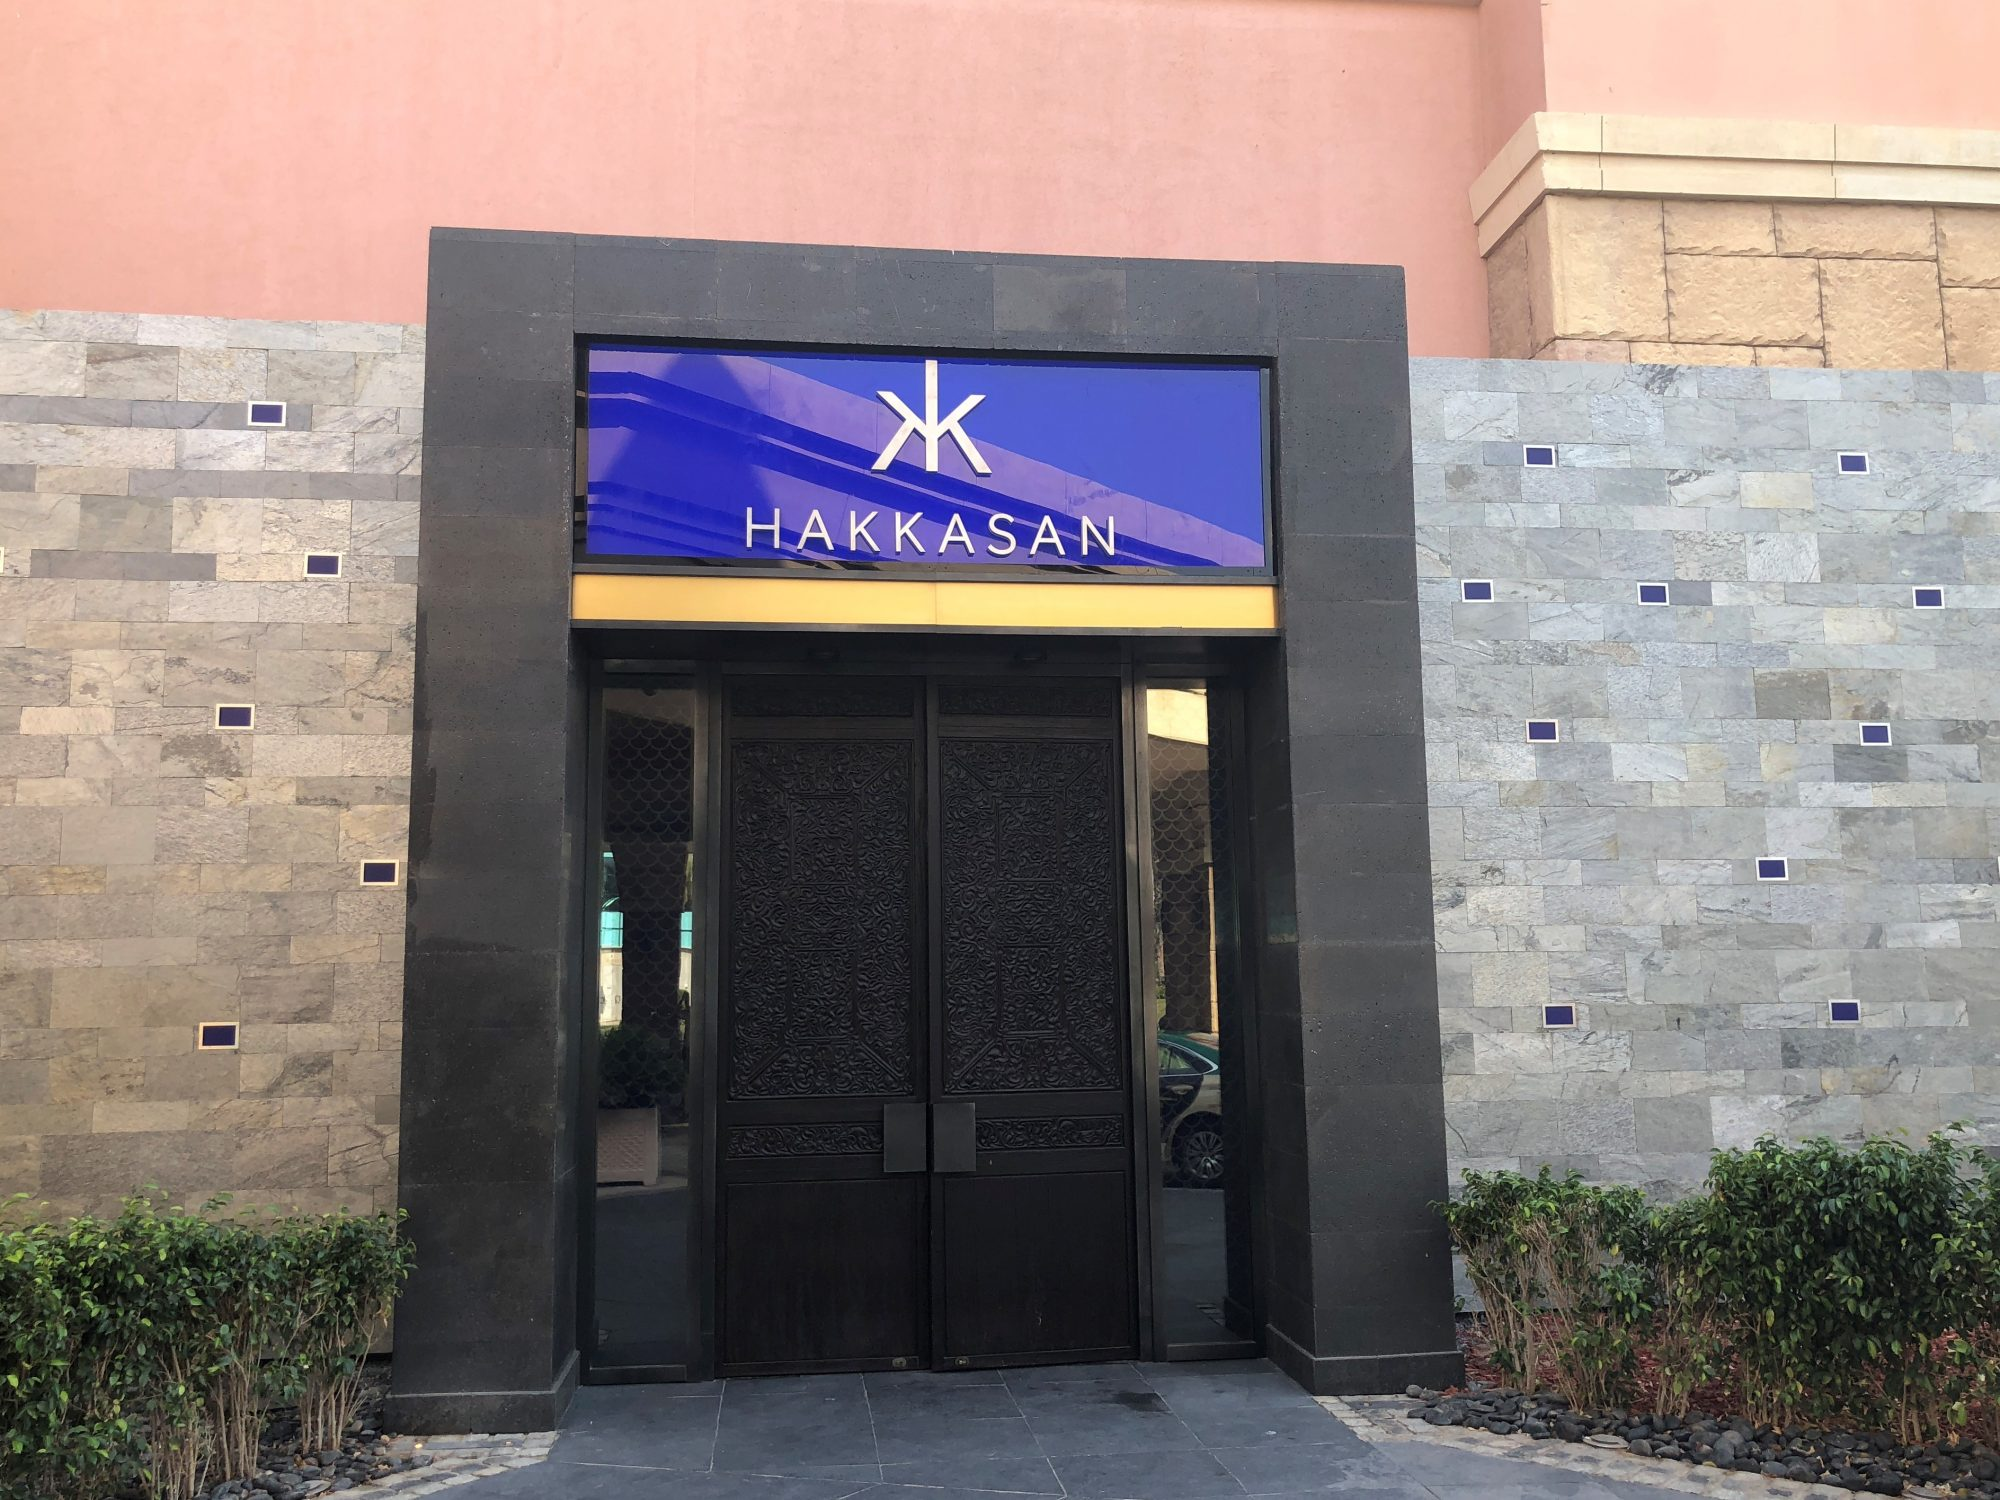 Hakkasan på Atlantis the Palm i Dubai